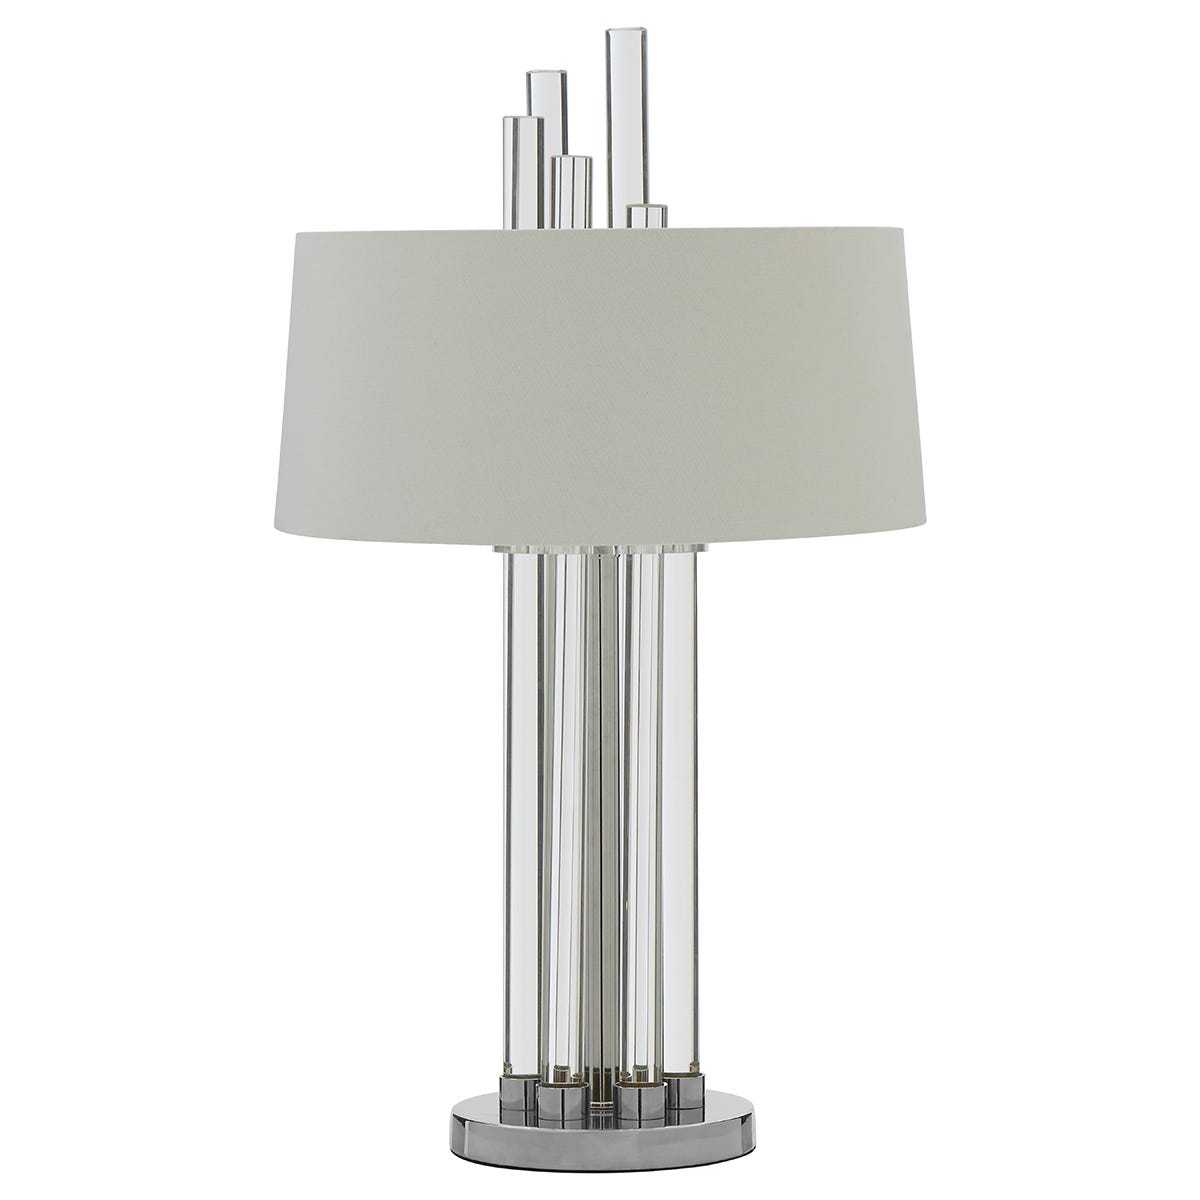 Premier Housewares Midas Table Lamp with Silver Finish Base & White Fabric Shade